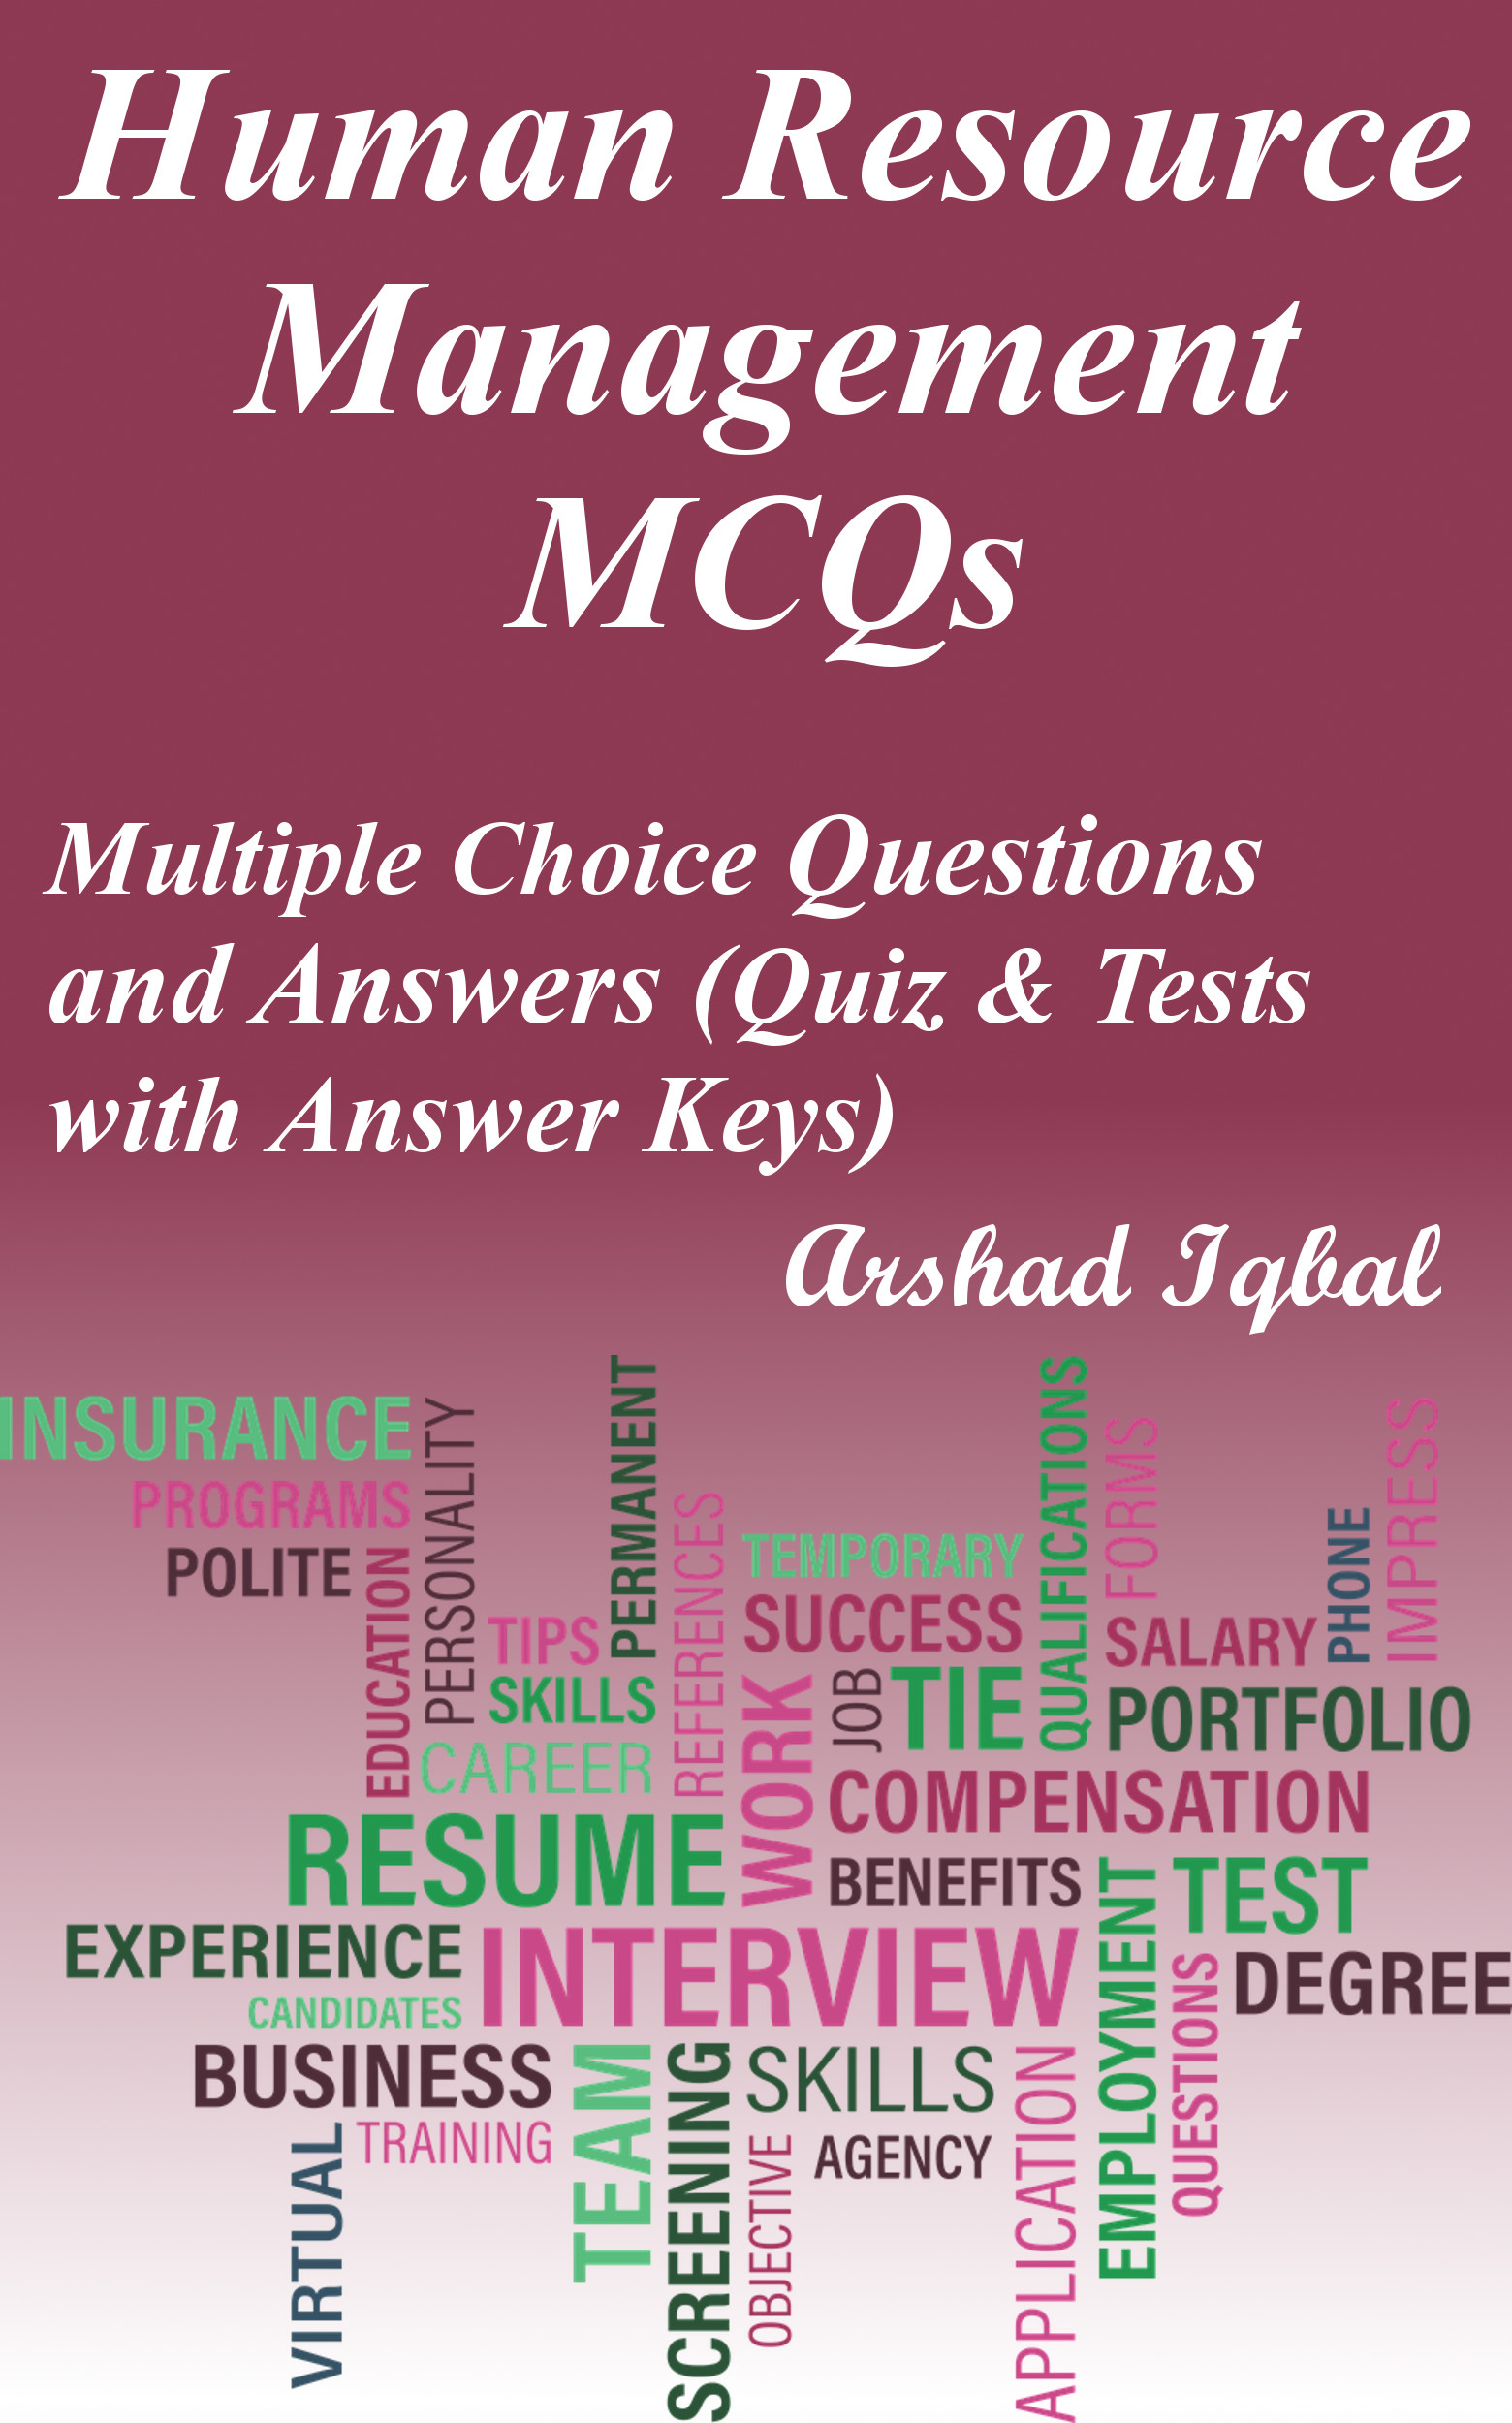 Human Resource Management Multiple Choice Questions and Answers (MCQs): Quizzes & Practice Tests with Answer Key